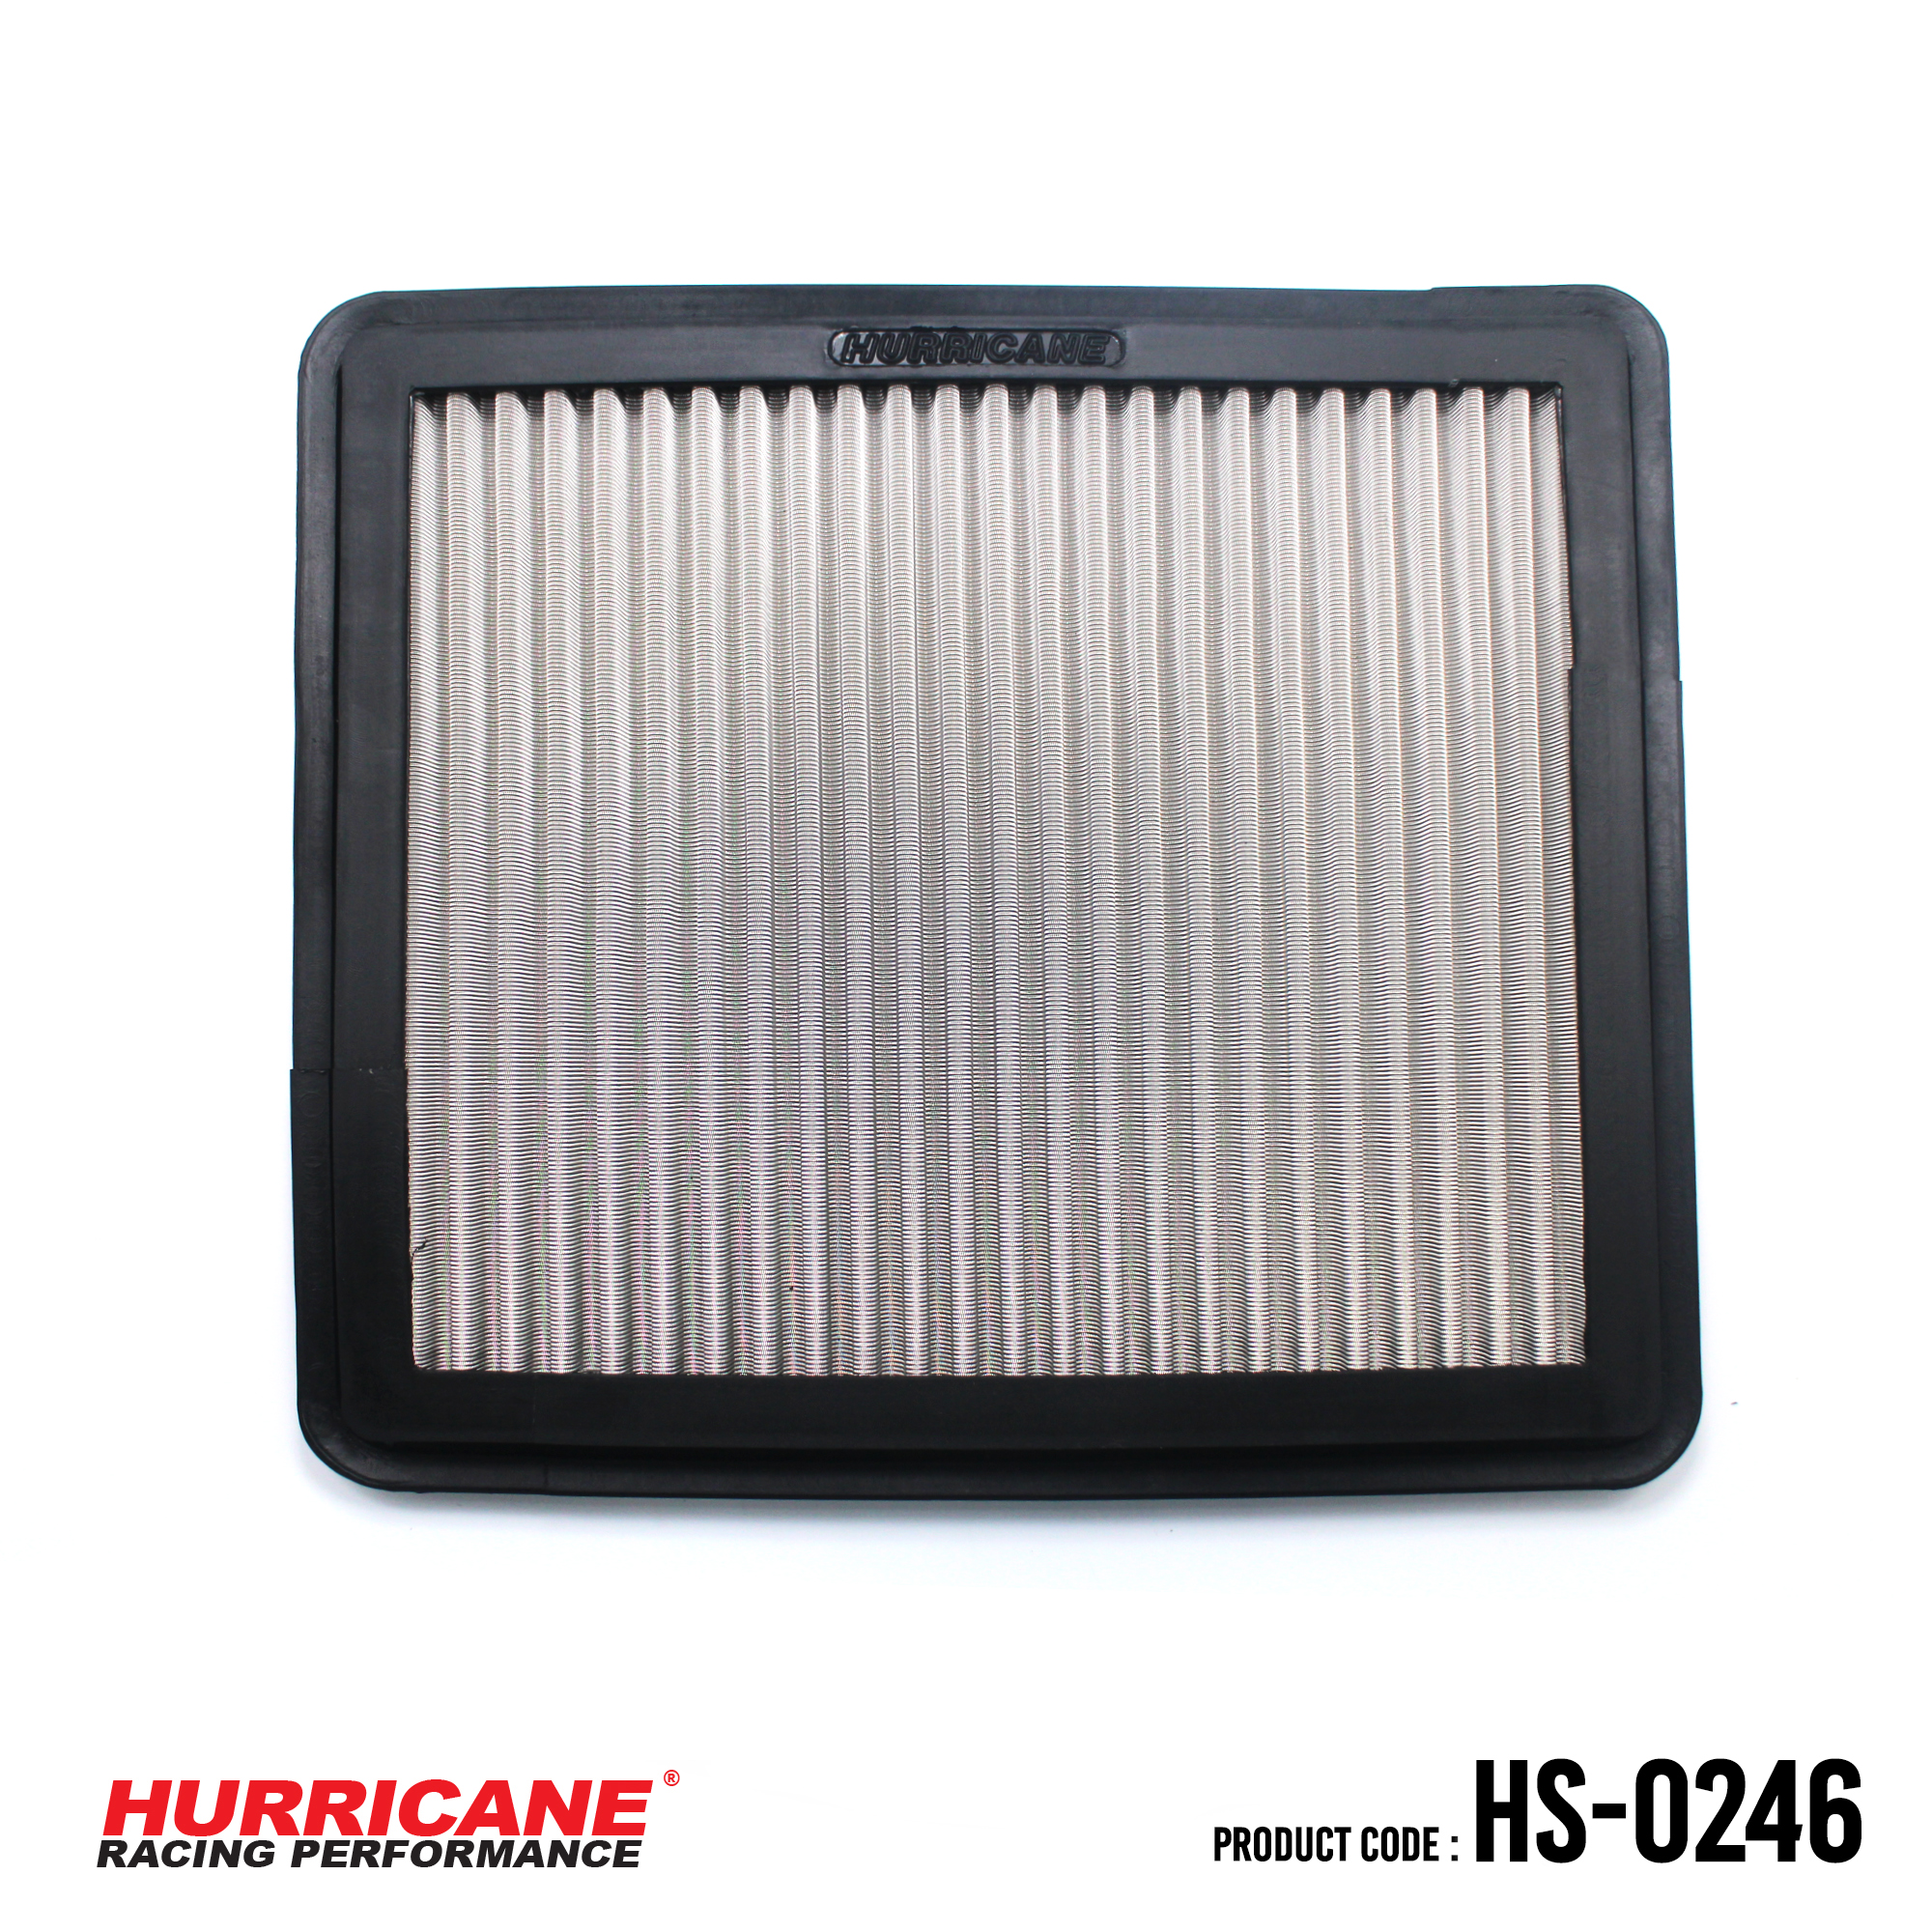 HURRICANE STAINLESS STEEL AIR FILTER FOR HS-0246 Nissan